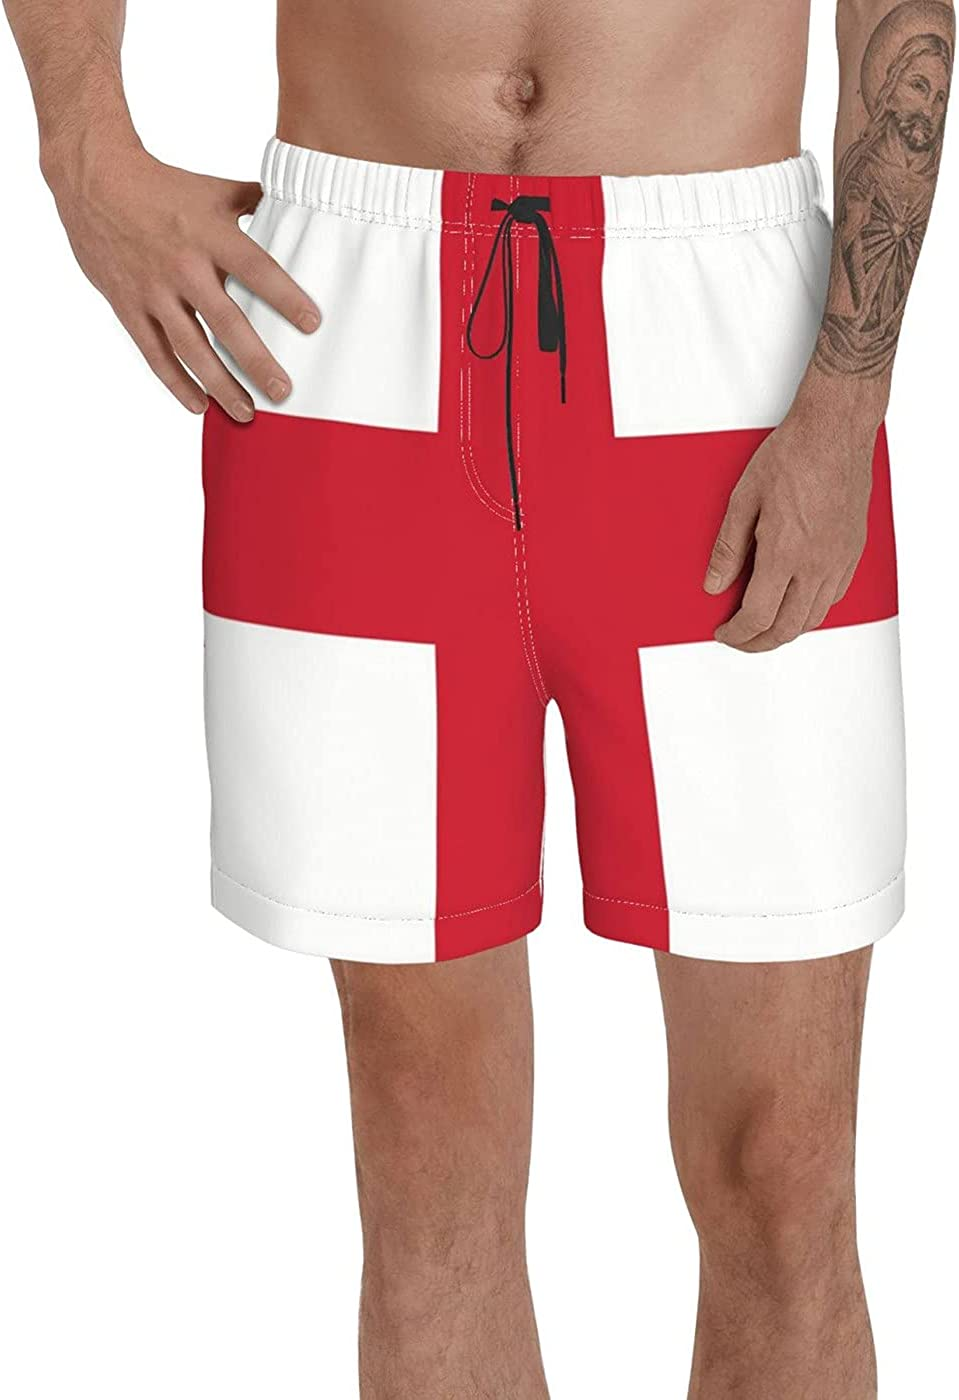 Count England Flag Men's 3D Printed Funny Summer Quick Dry Swim Short Board Shorts with